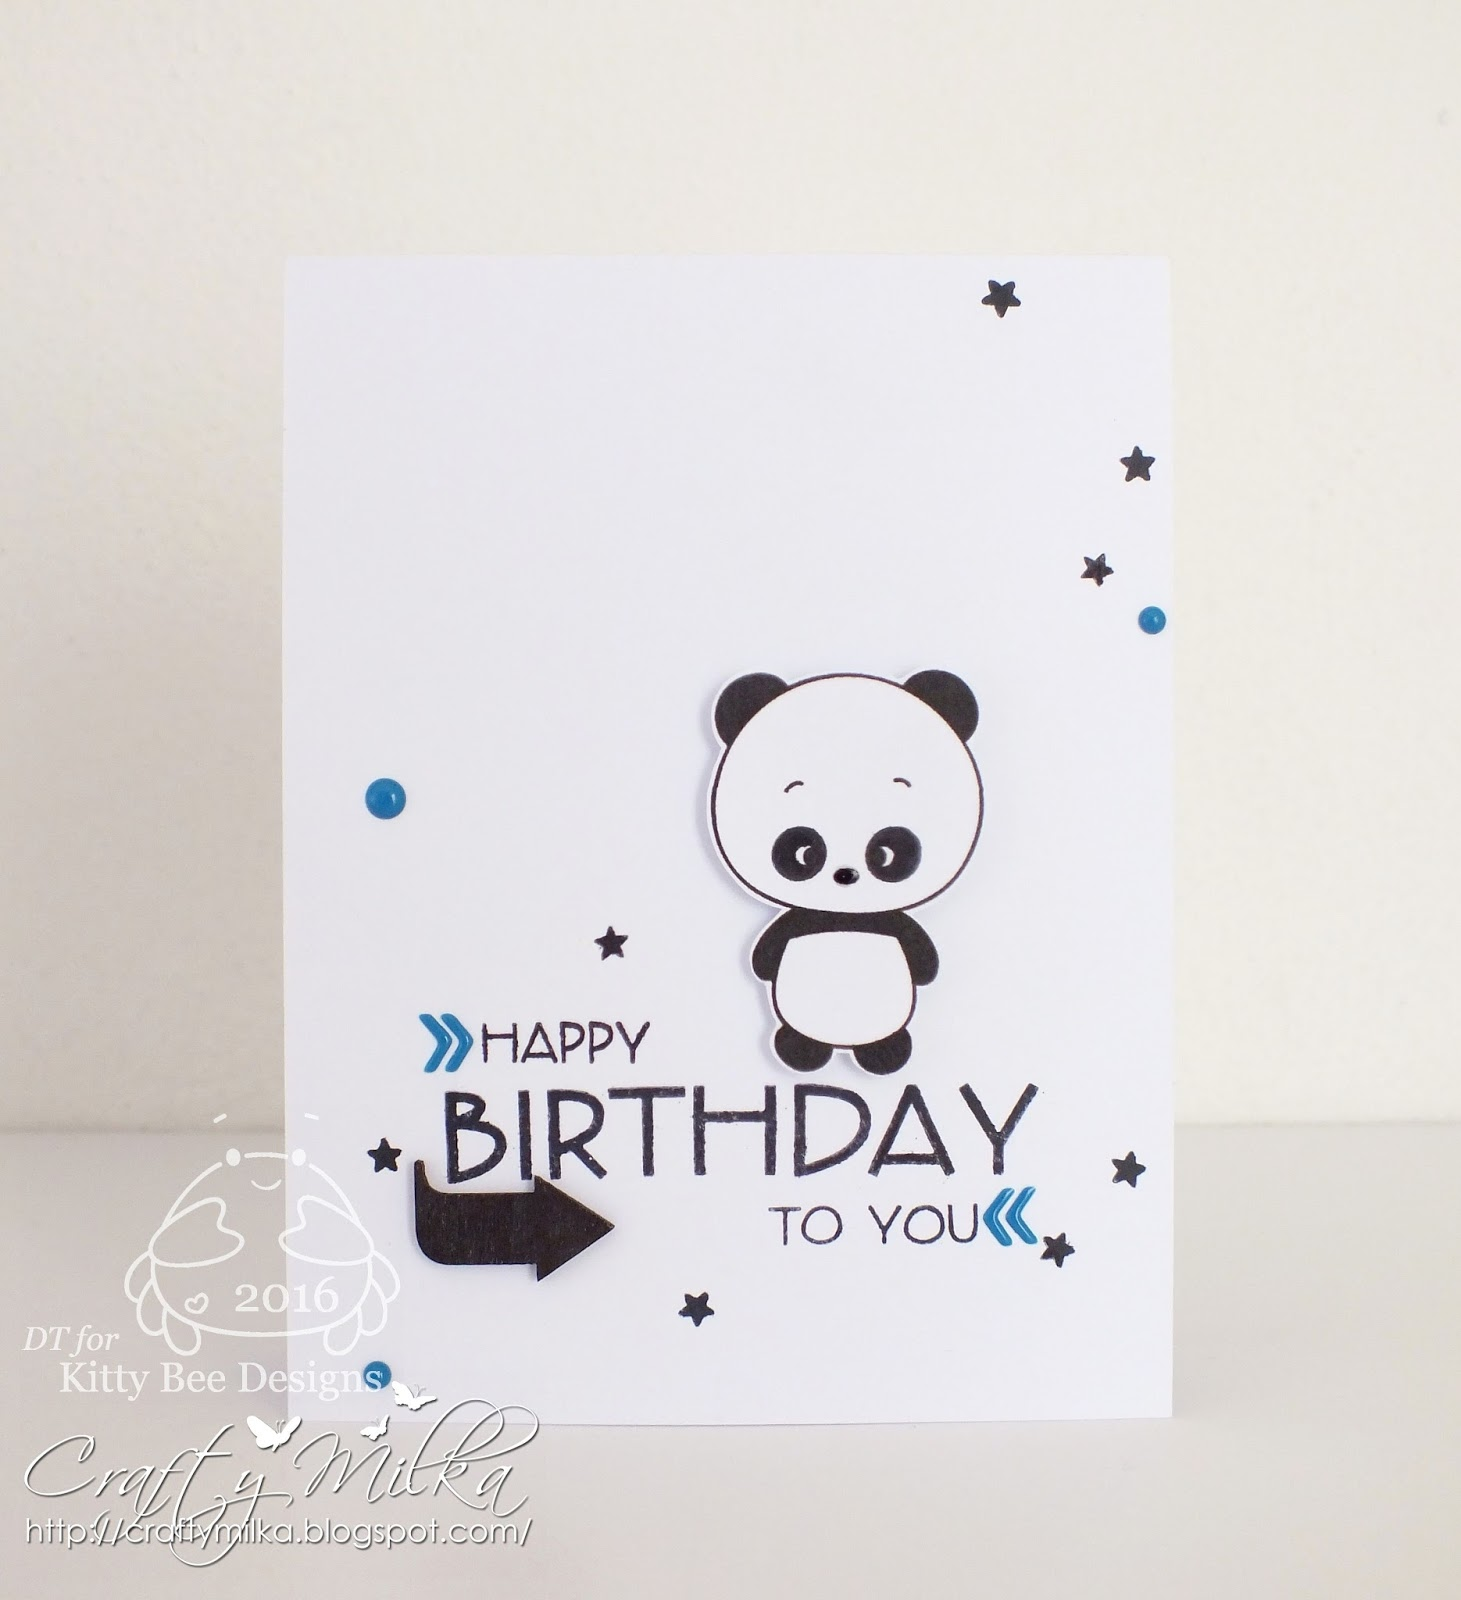 Crafty milka happy birthday panda card kitty bee designs spotlight i used super cute panda love from 2013 january panda releases love all of them o bookmarktalkfo Image collections